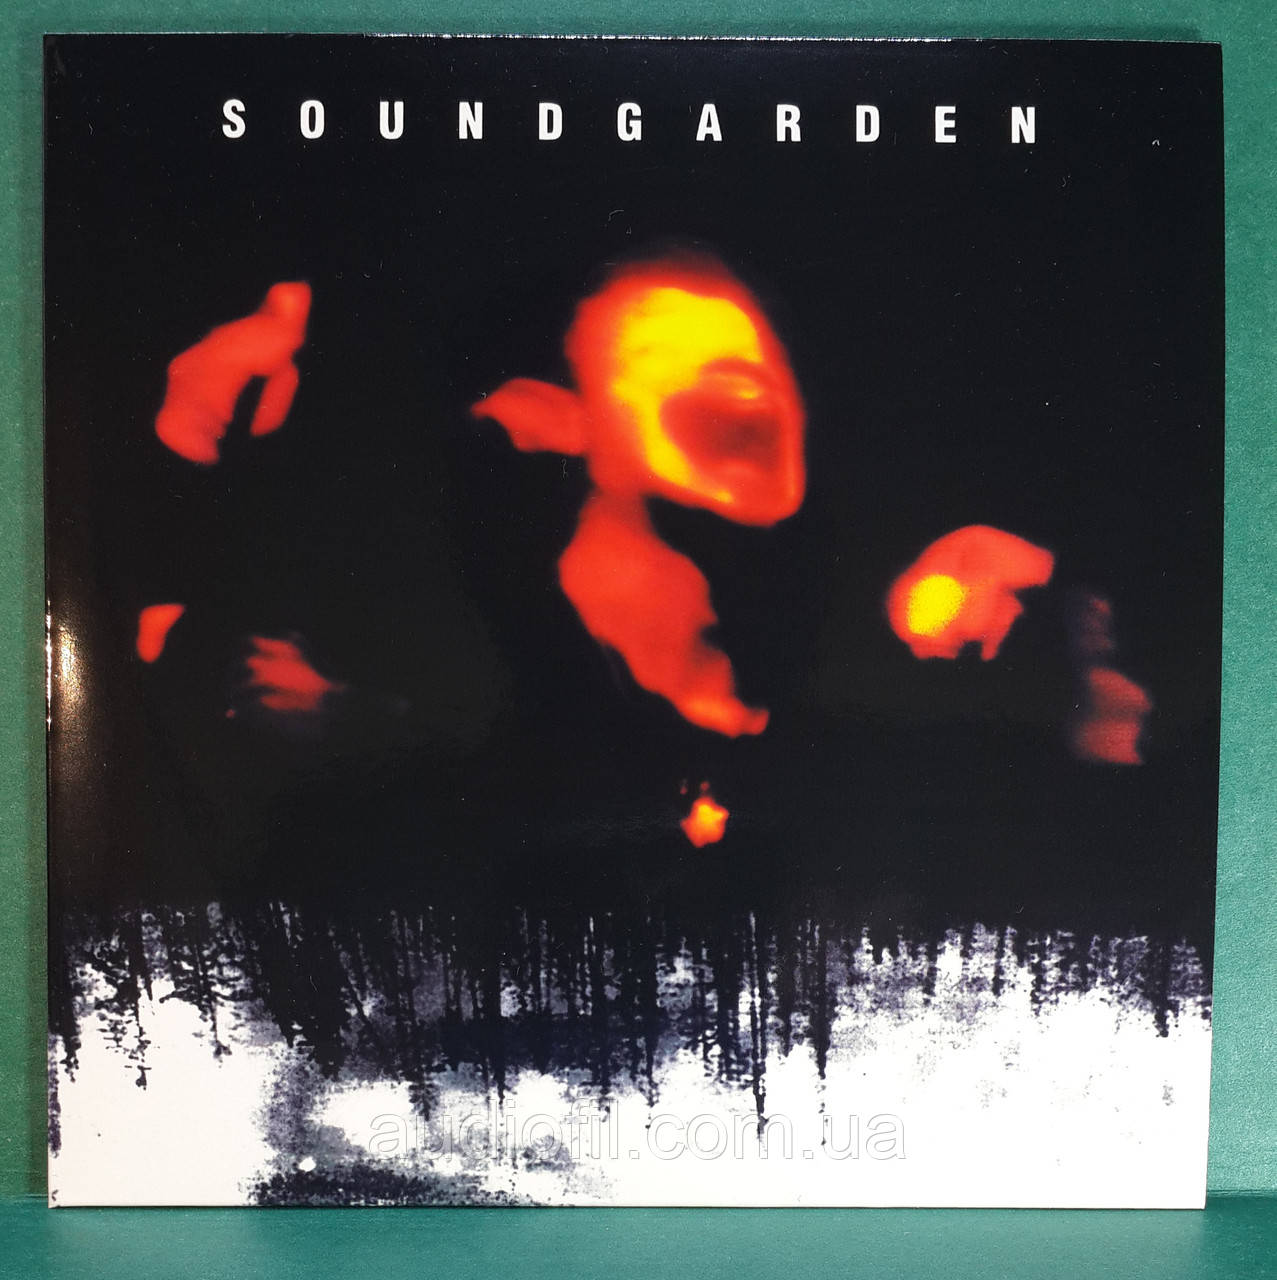 CD диск Soundgarden - Superunknown, фото 1